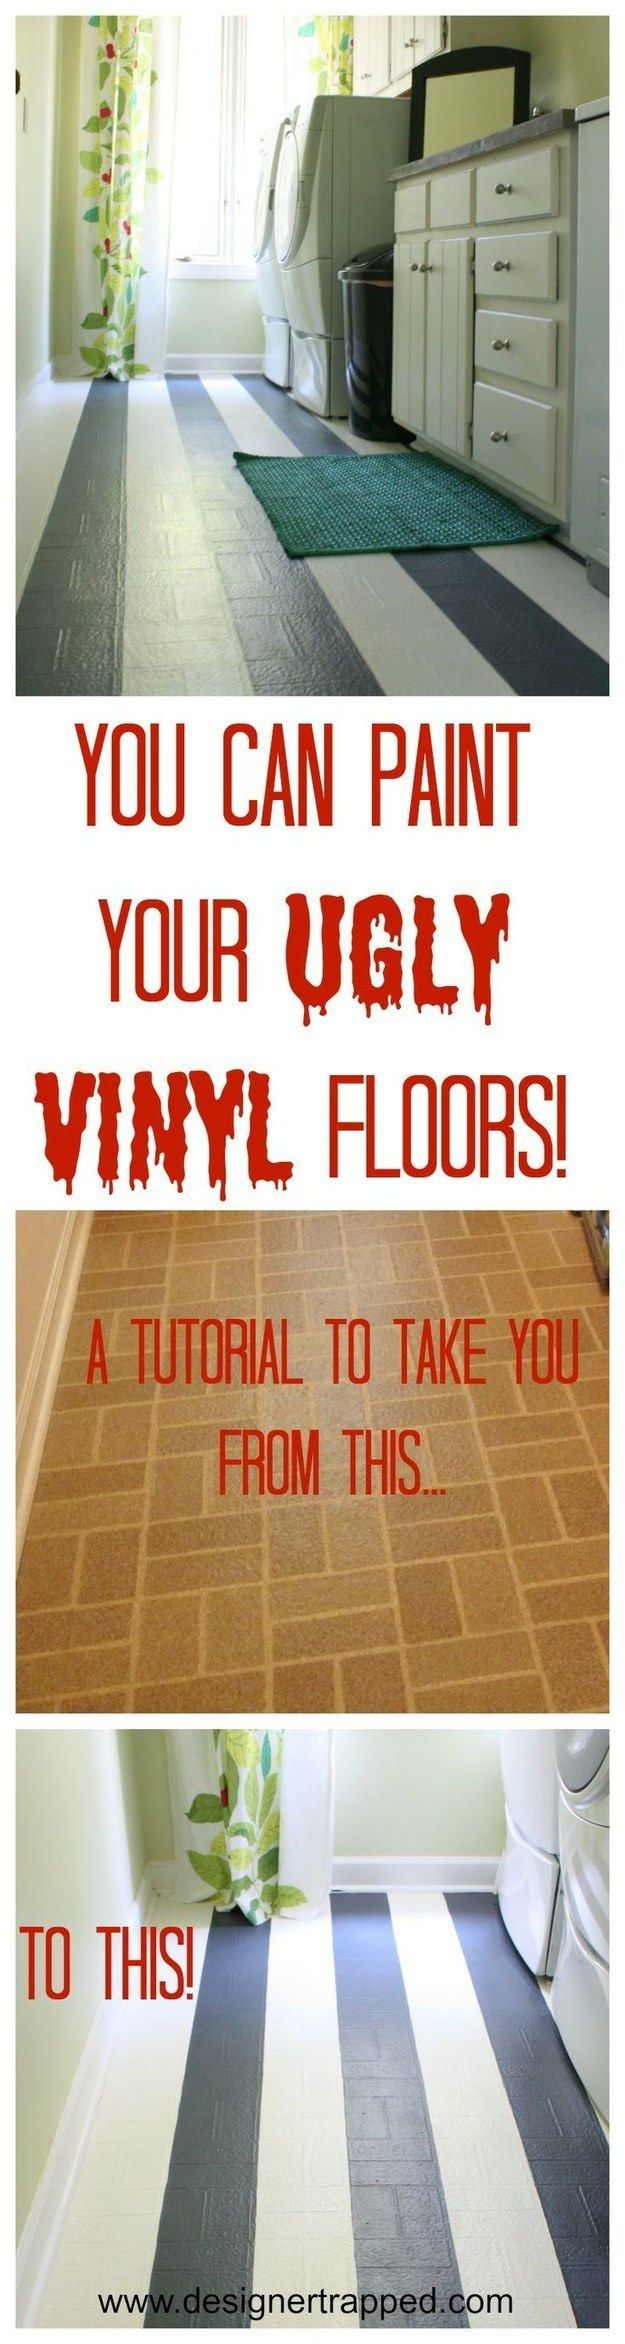 Simple Painting Ideas for Home Improvement on a Budget | Painting Vinyl Floors Tutorial by DIY Ready at http://diyready.com/small-budget-big-impact-upgrades/